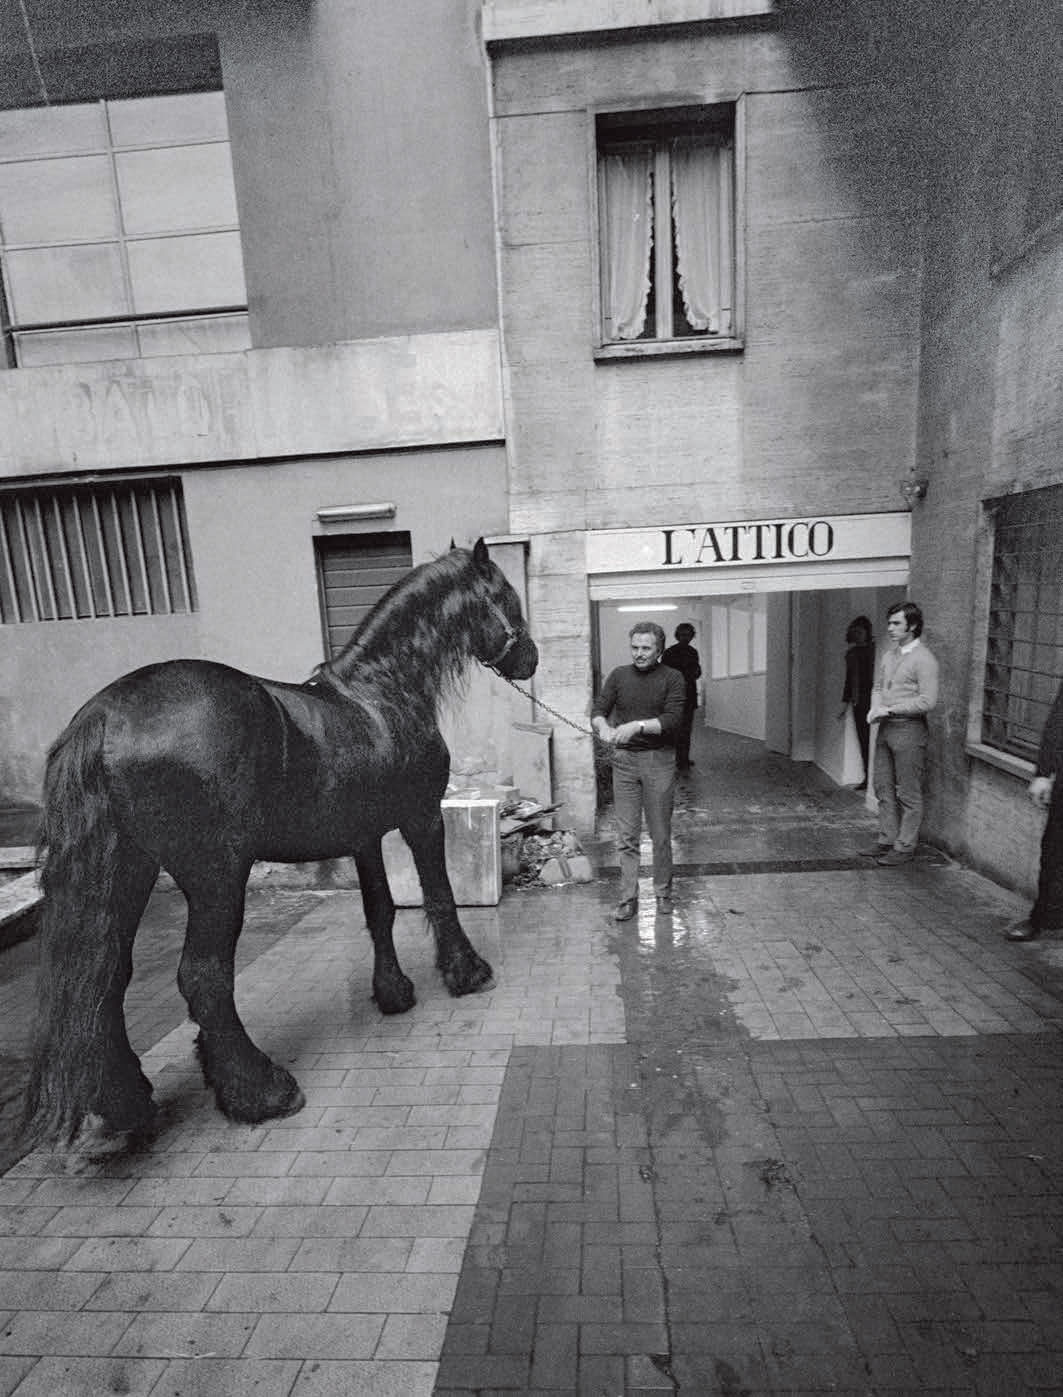 Gallery assistants at work on Untitled (Cavalli), Galleria L'Attico, Roma, 1969